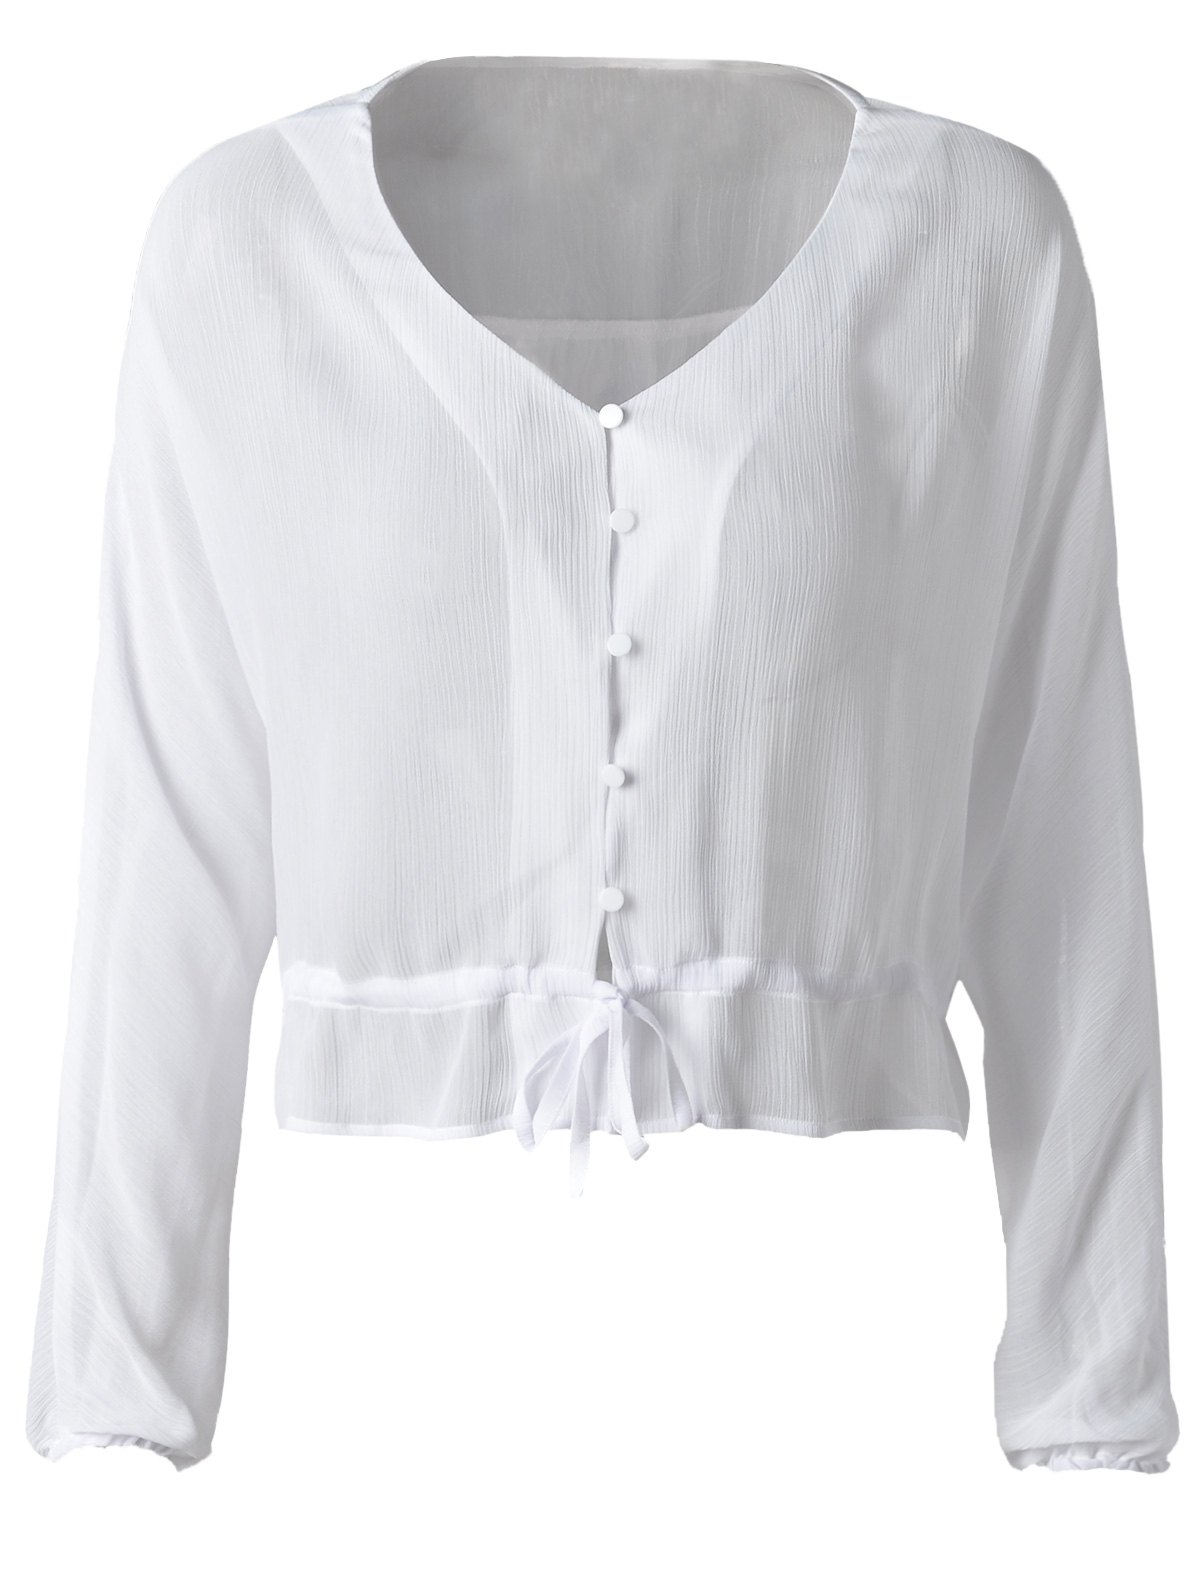 Fashionable Chiffon Falbala Blouse For Women - CRYSTAL CREAM S